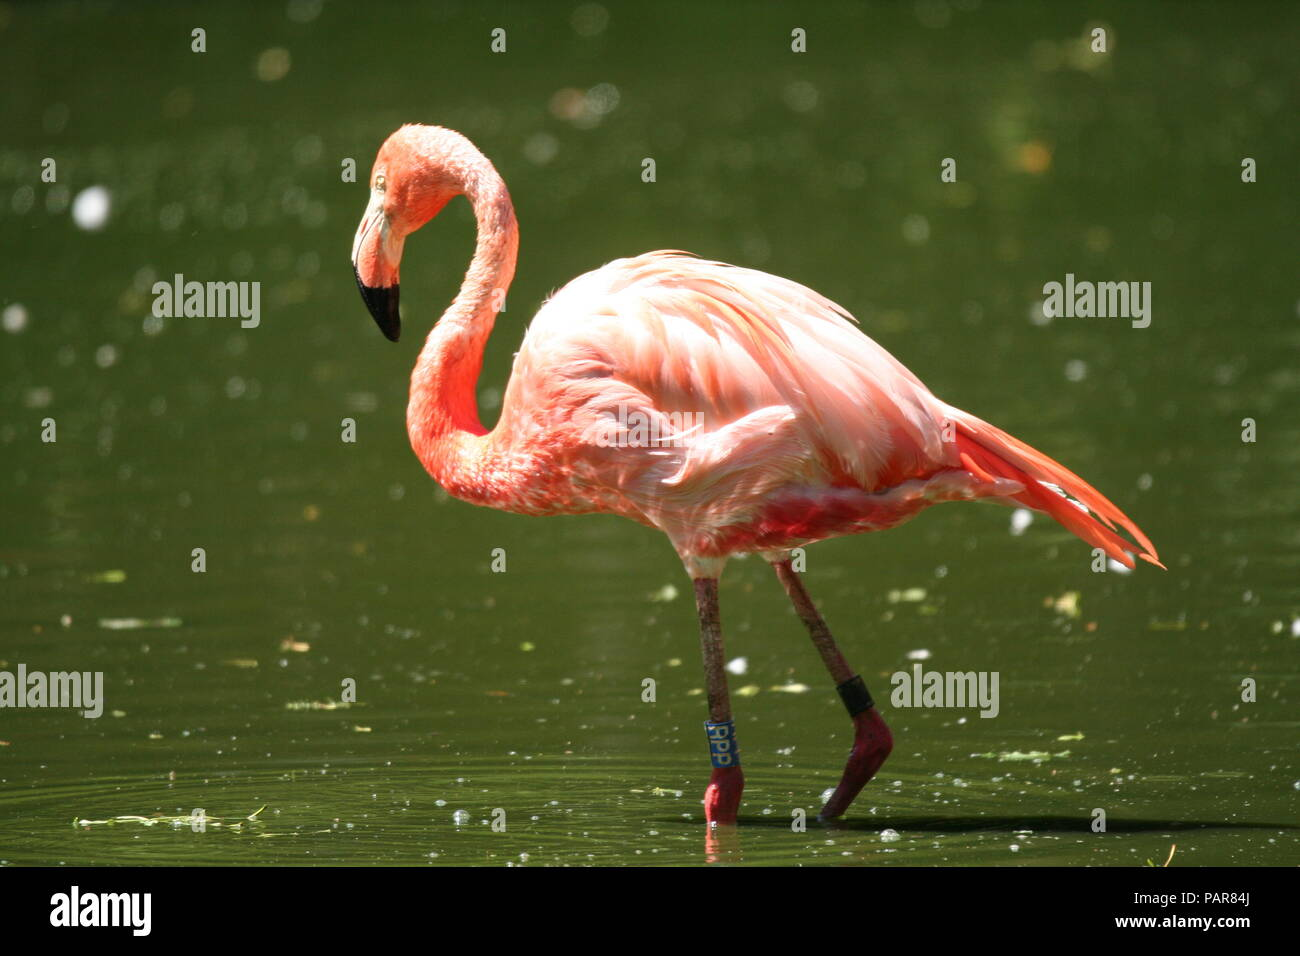 Flamingo relaxing on warm summer day at Chester zoo - Stock Image